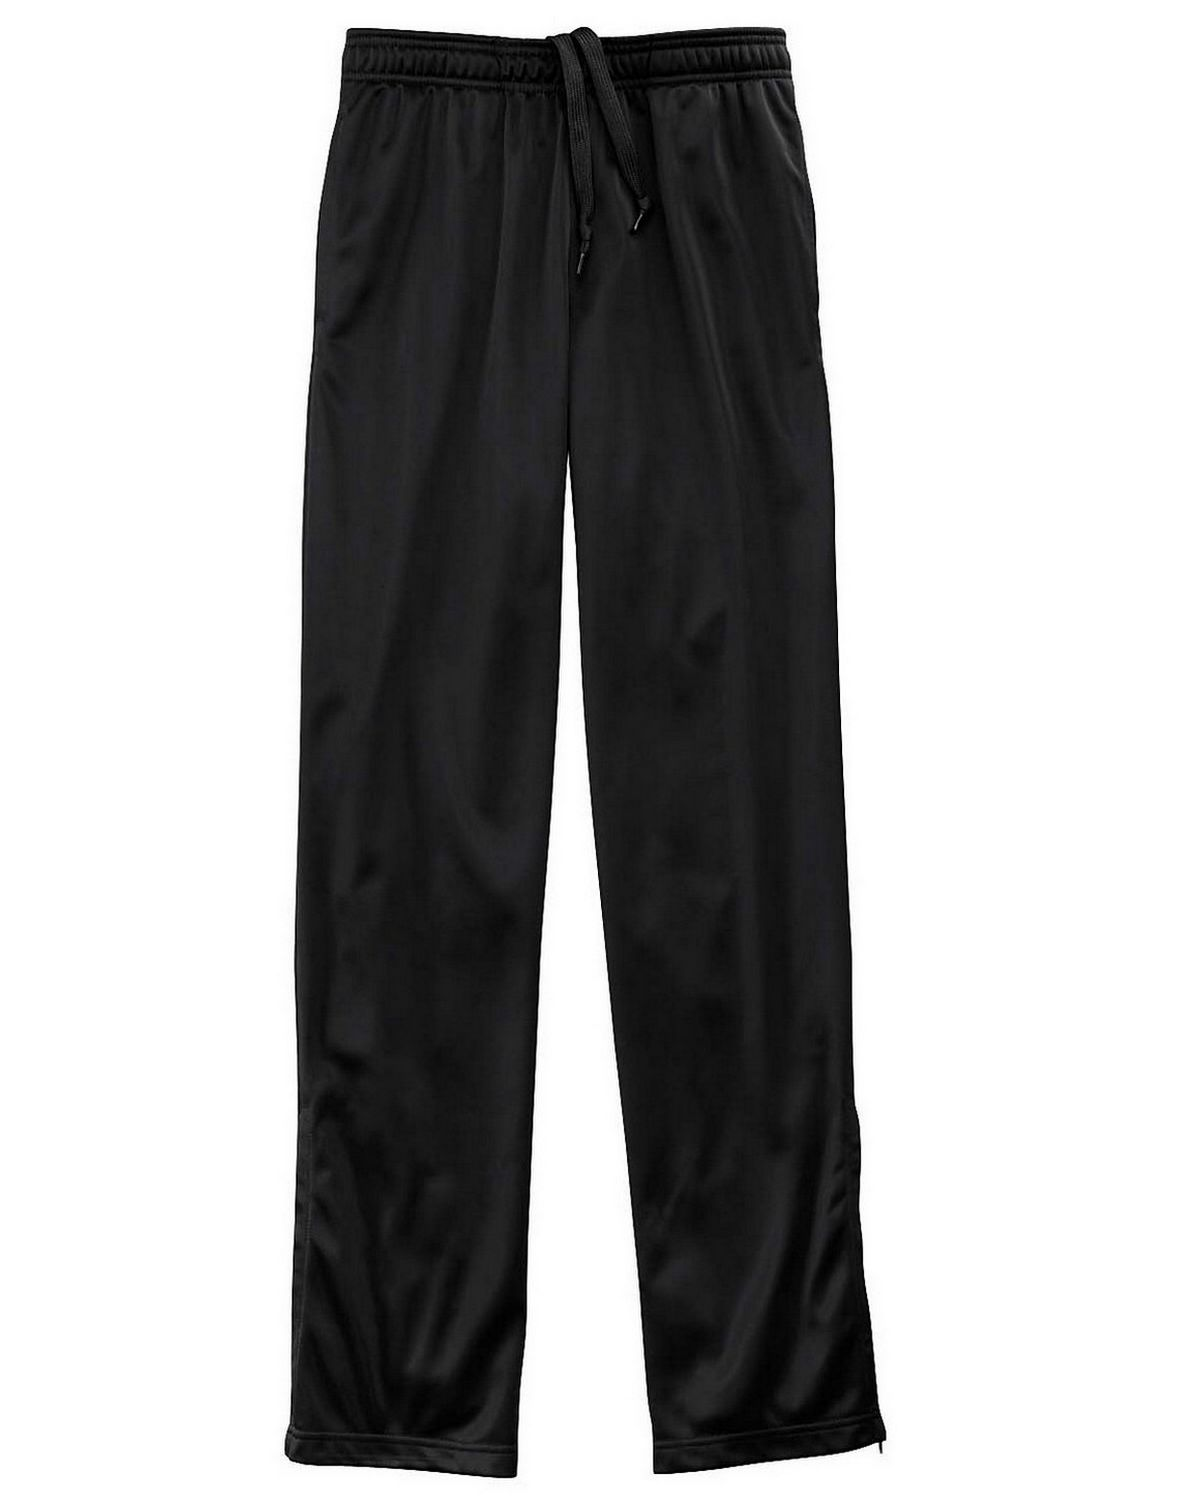 Harriton M391W Ladies Tricot Track Pants - Black - M M391W